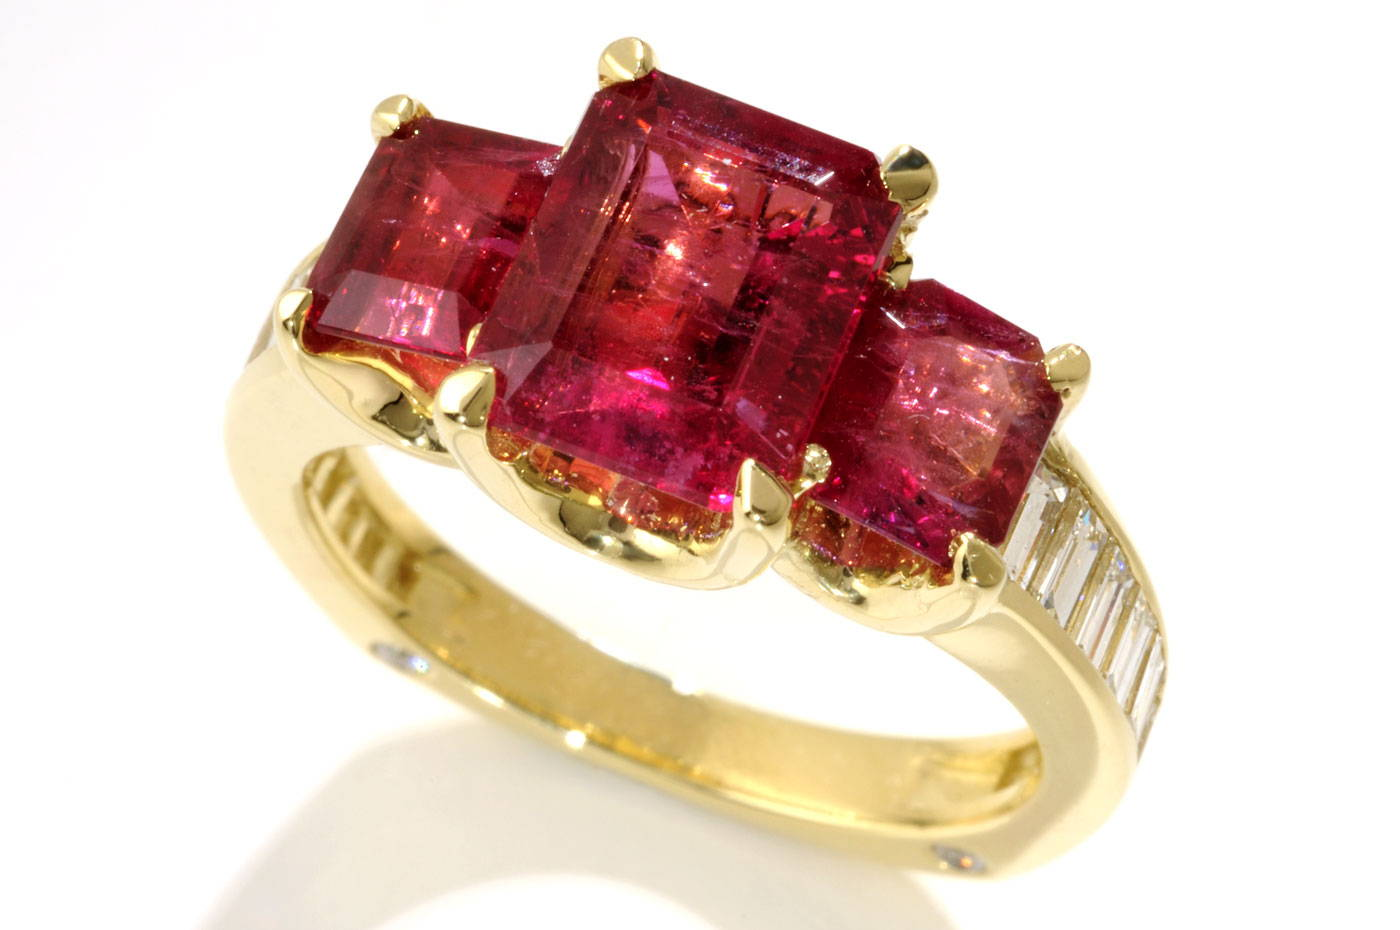 Image of Lester Lampert Berylicious Ring for The Chicago Field Museum Project